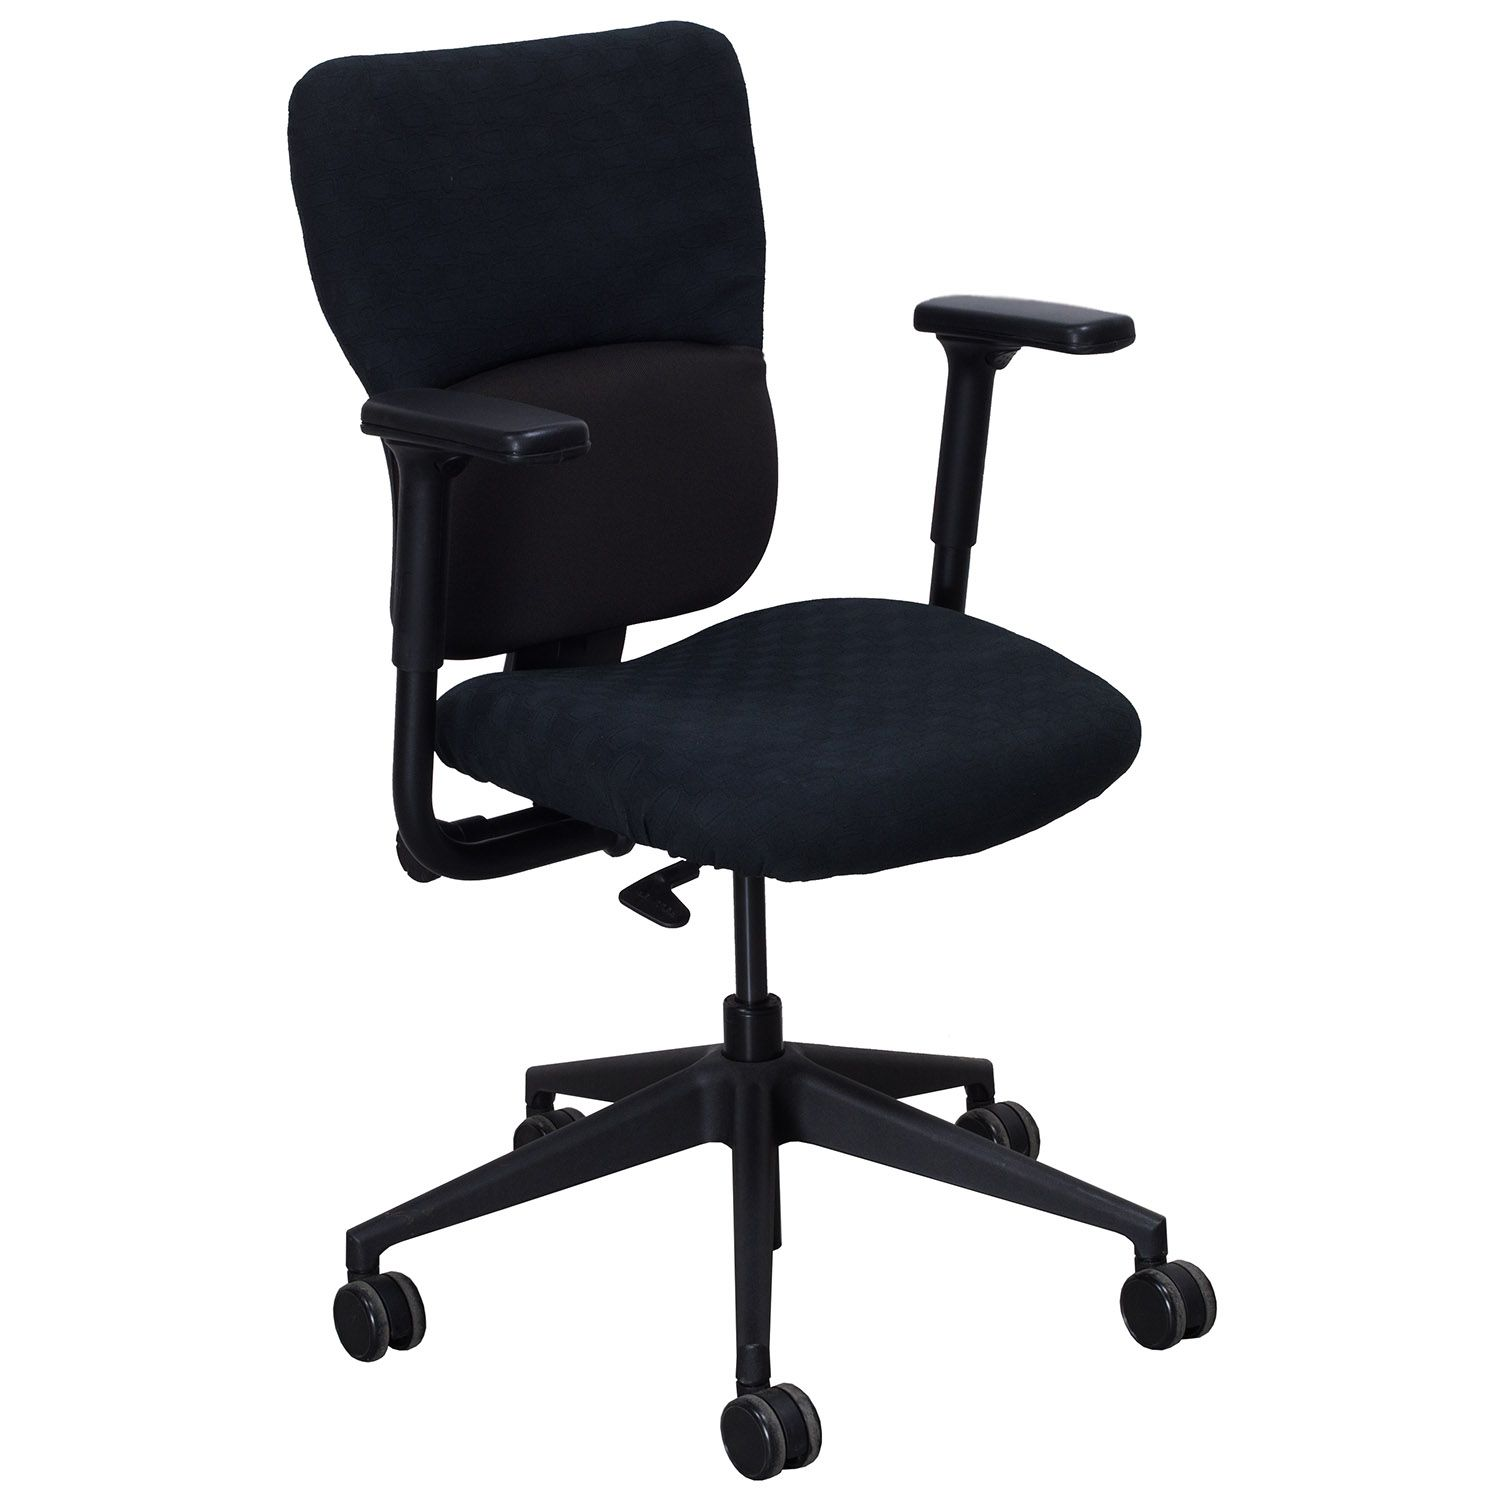 Steelcase Turnstone Let s B Task Chair NOLstore